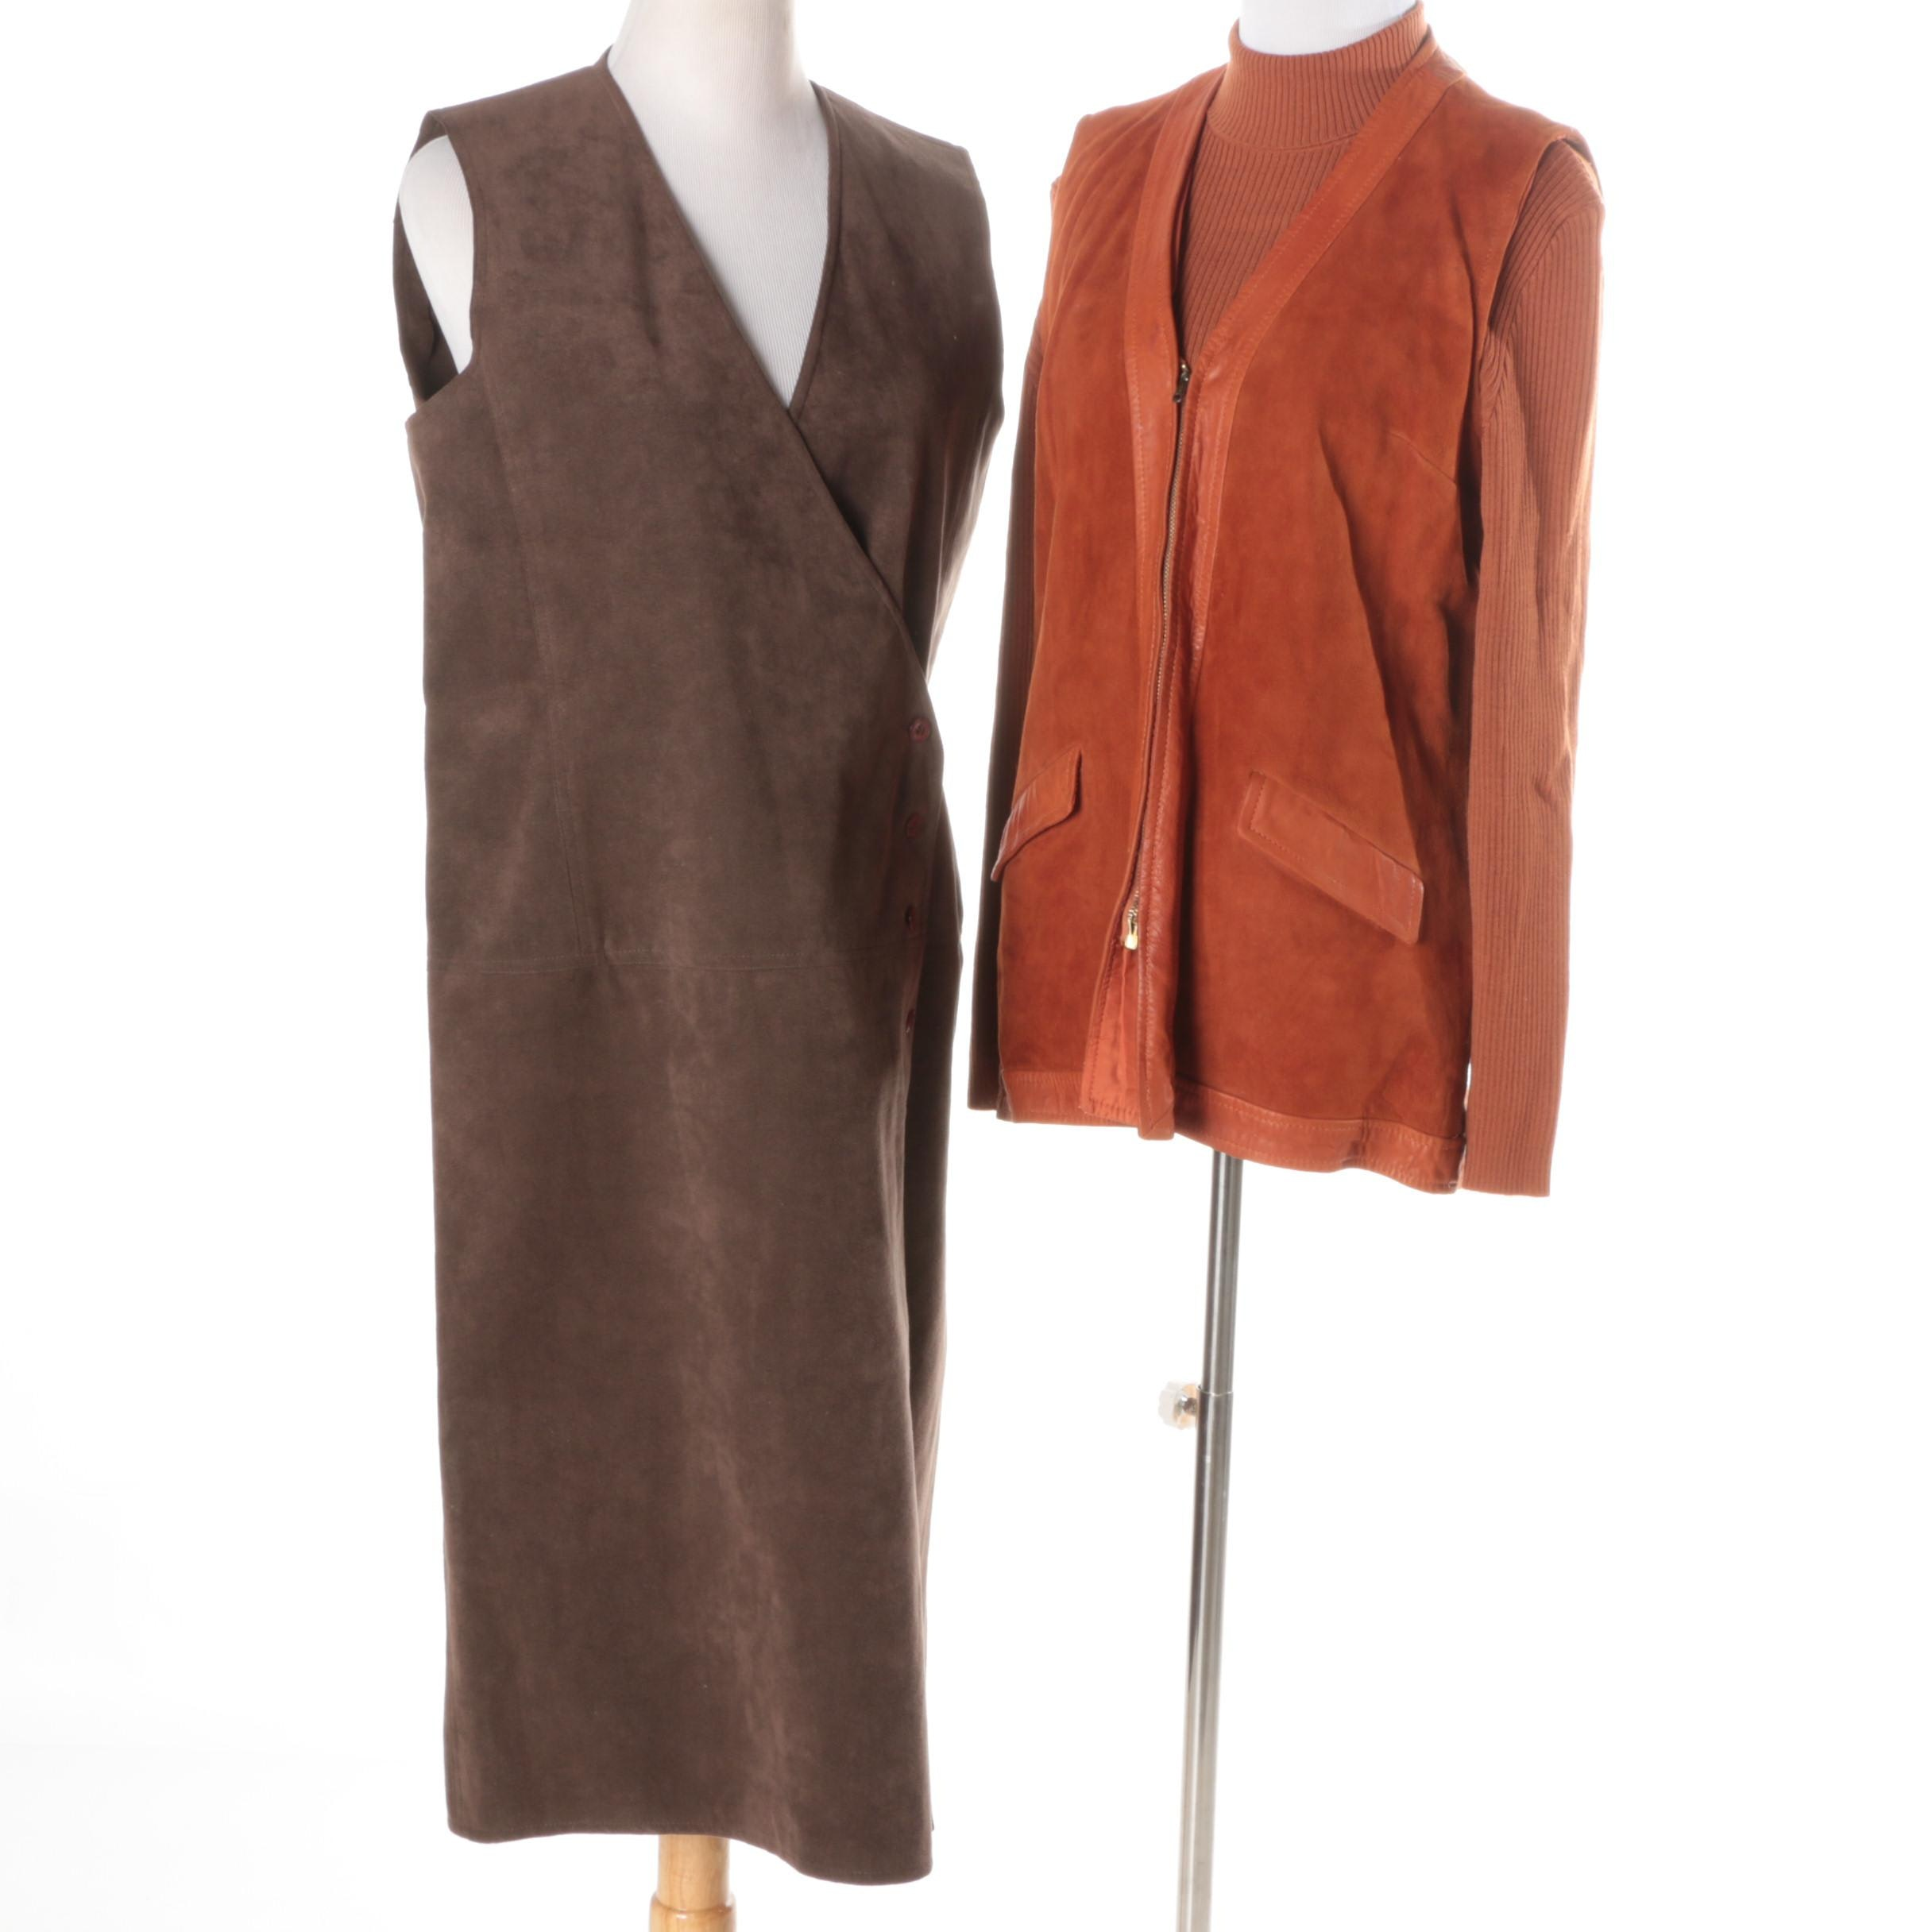 Women's Vintage Suede and Ultra Suede Separates